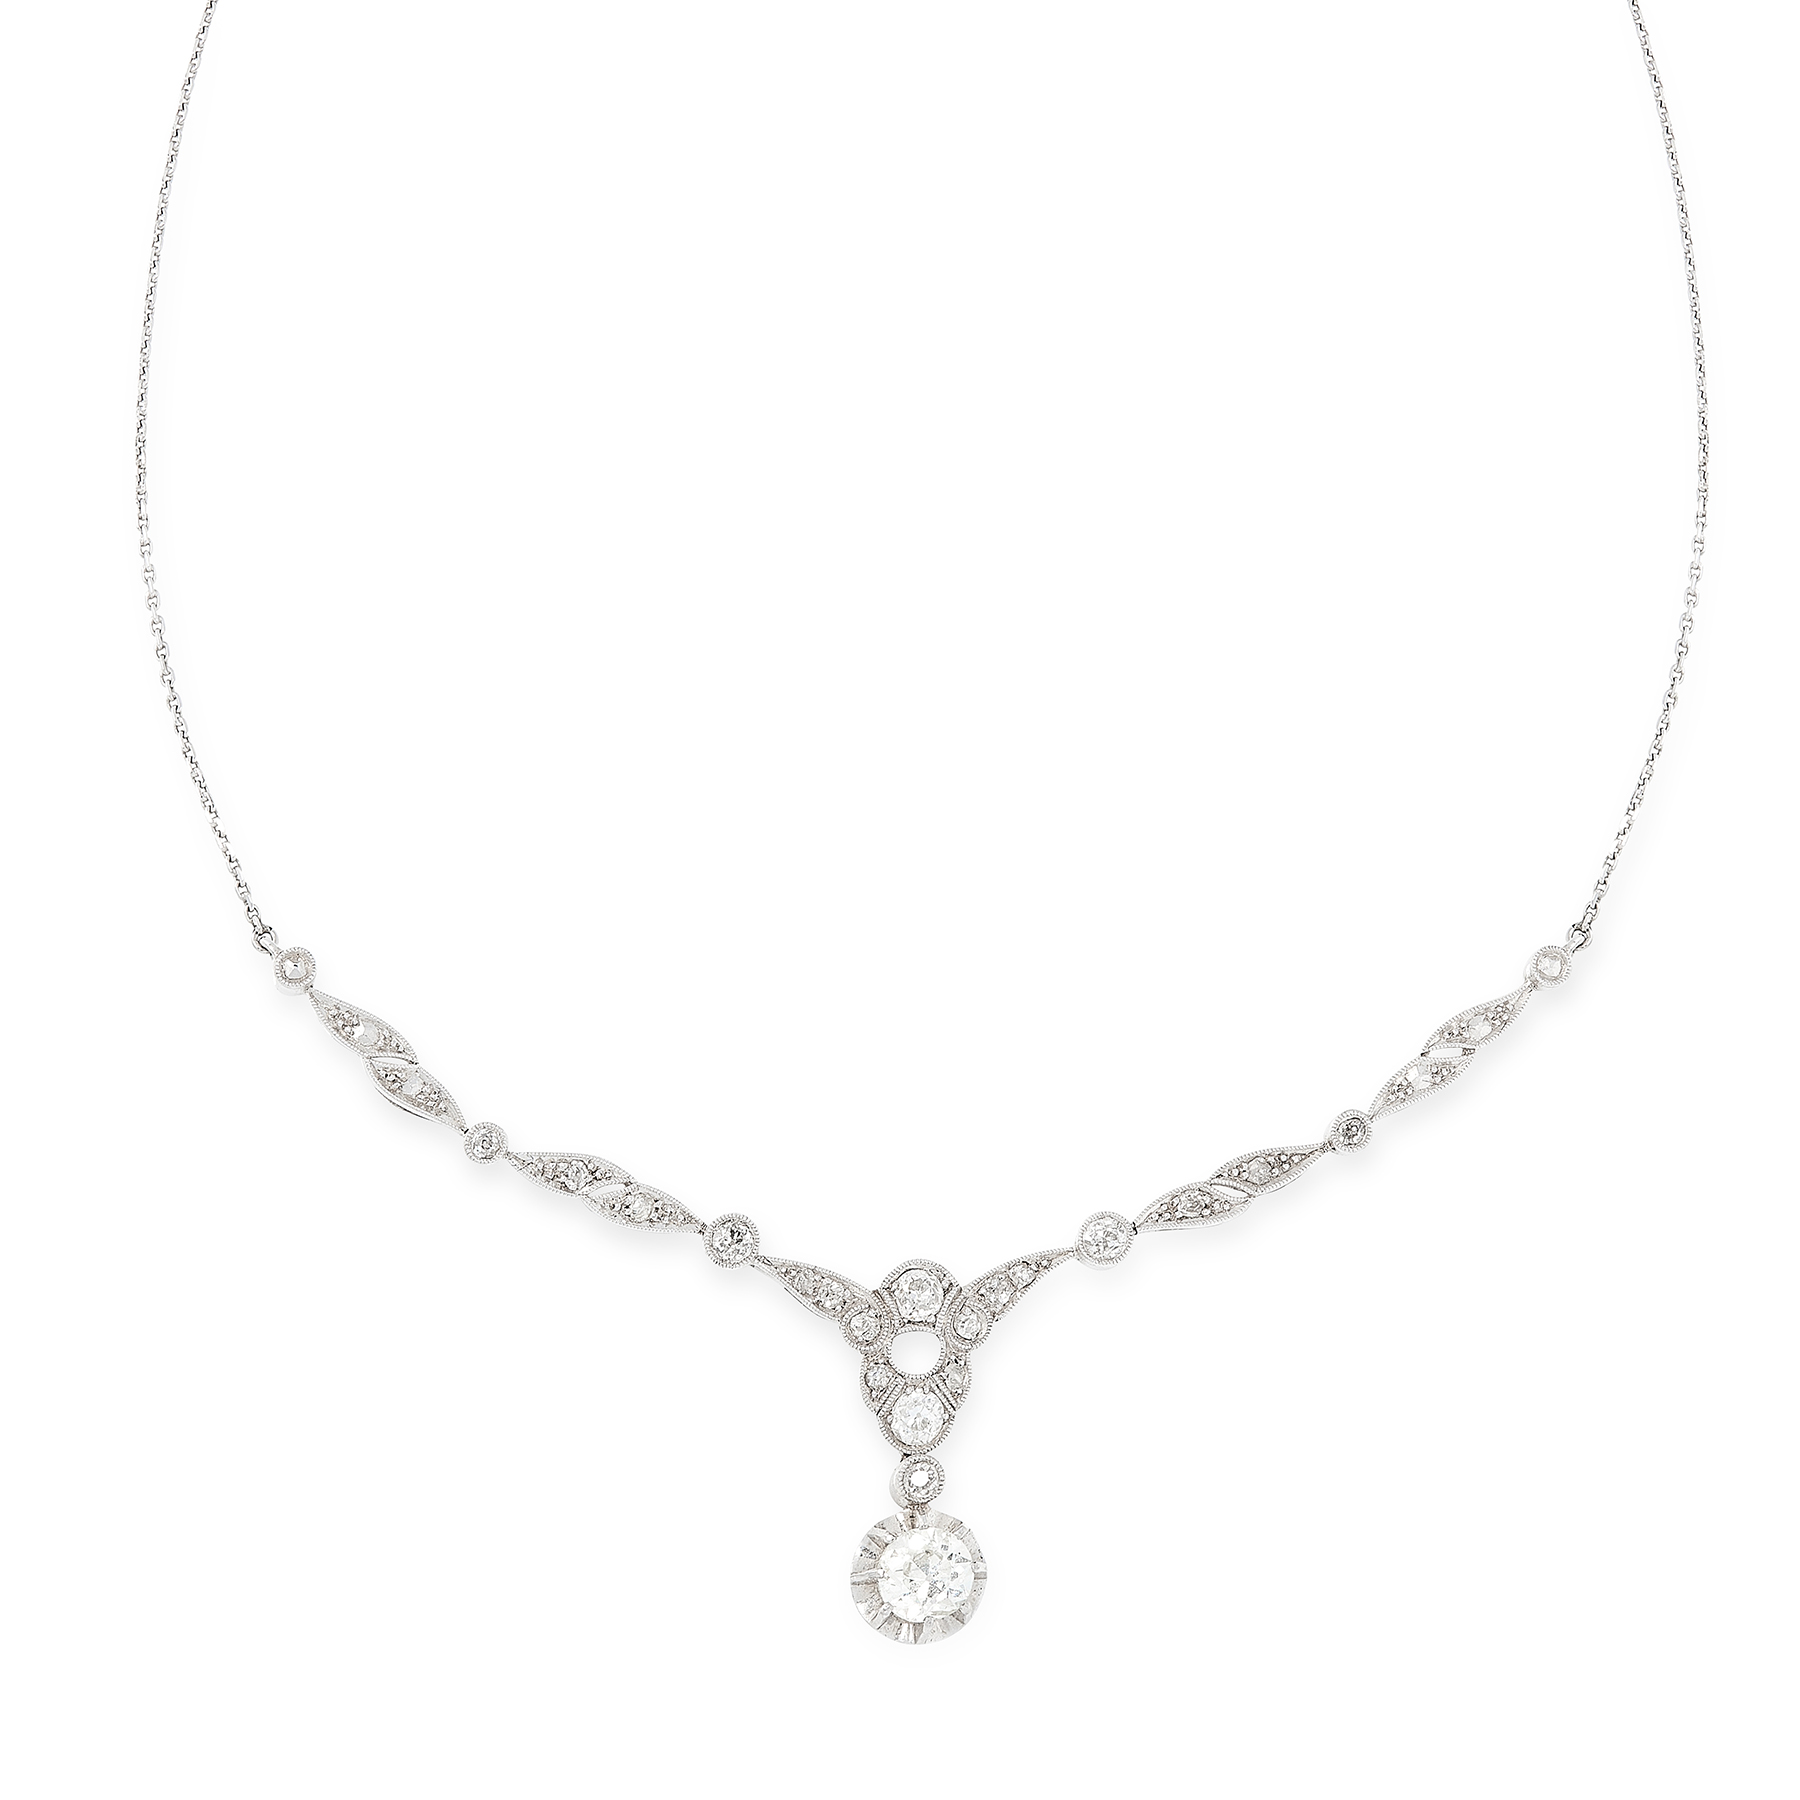 A DIAMOND NECKLACE, EARLY 20TH CENTURY set with a principal old cut diamond of 0.84 carats suspended